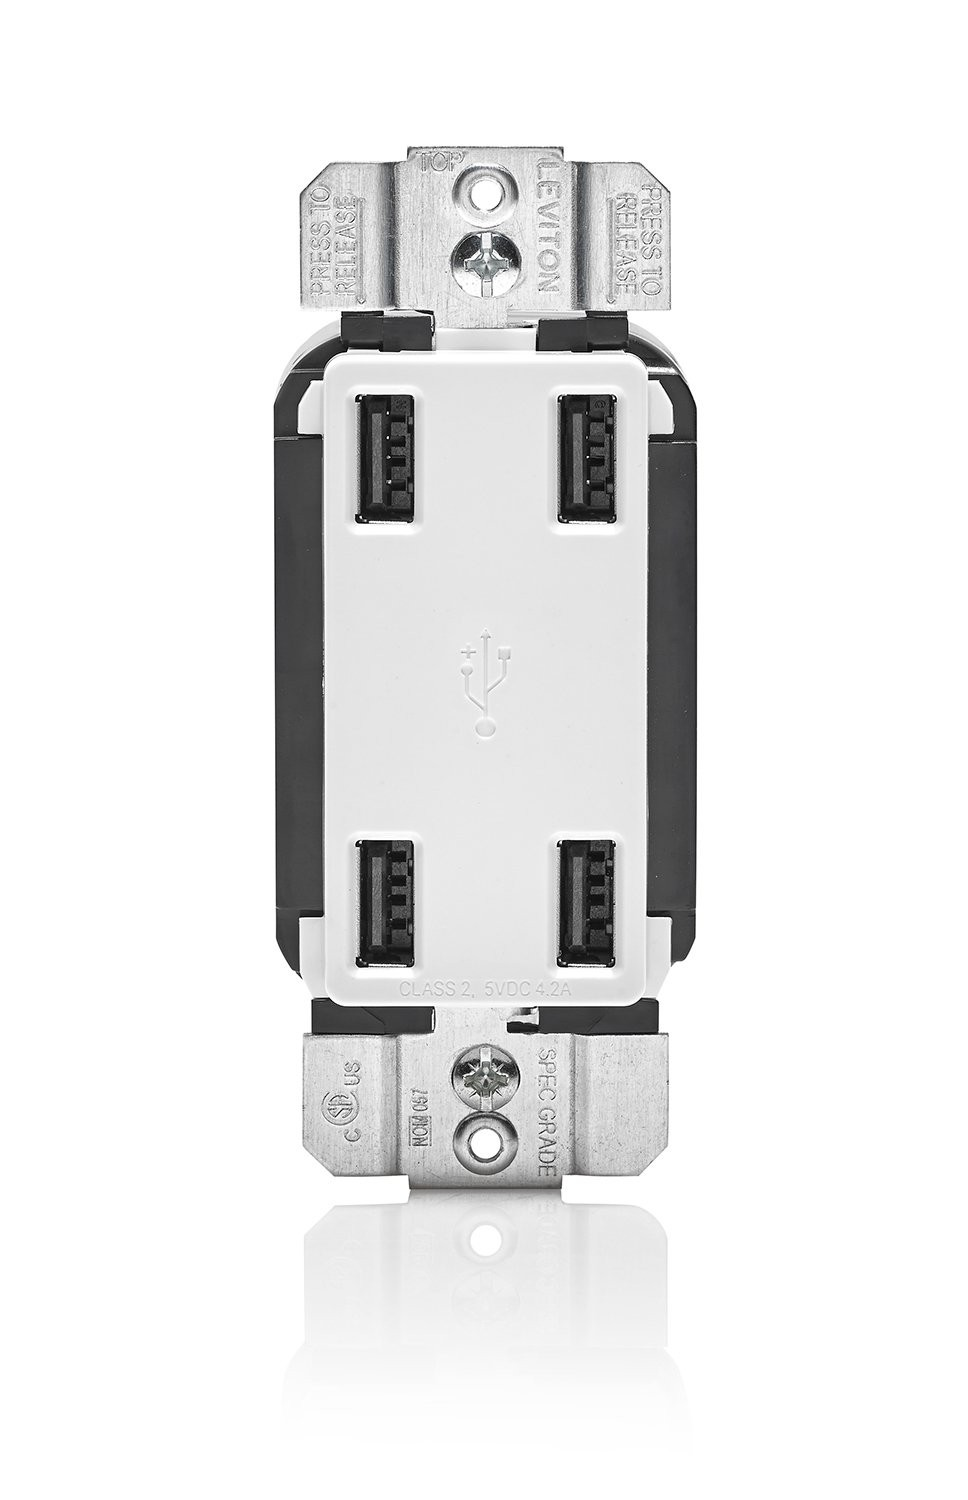 Leviton® Dimmers, Light Switches, & Electrical Outlets